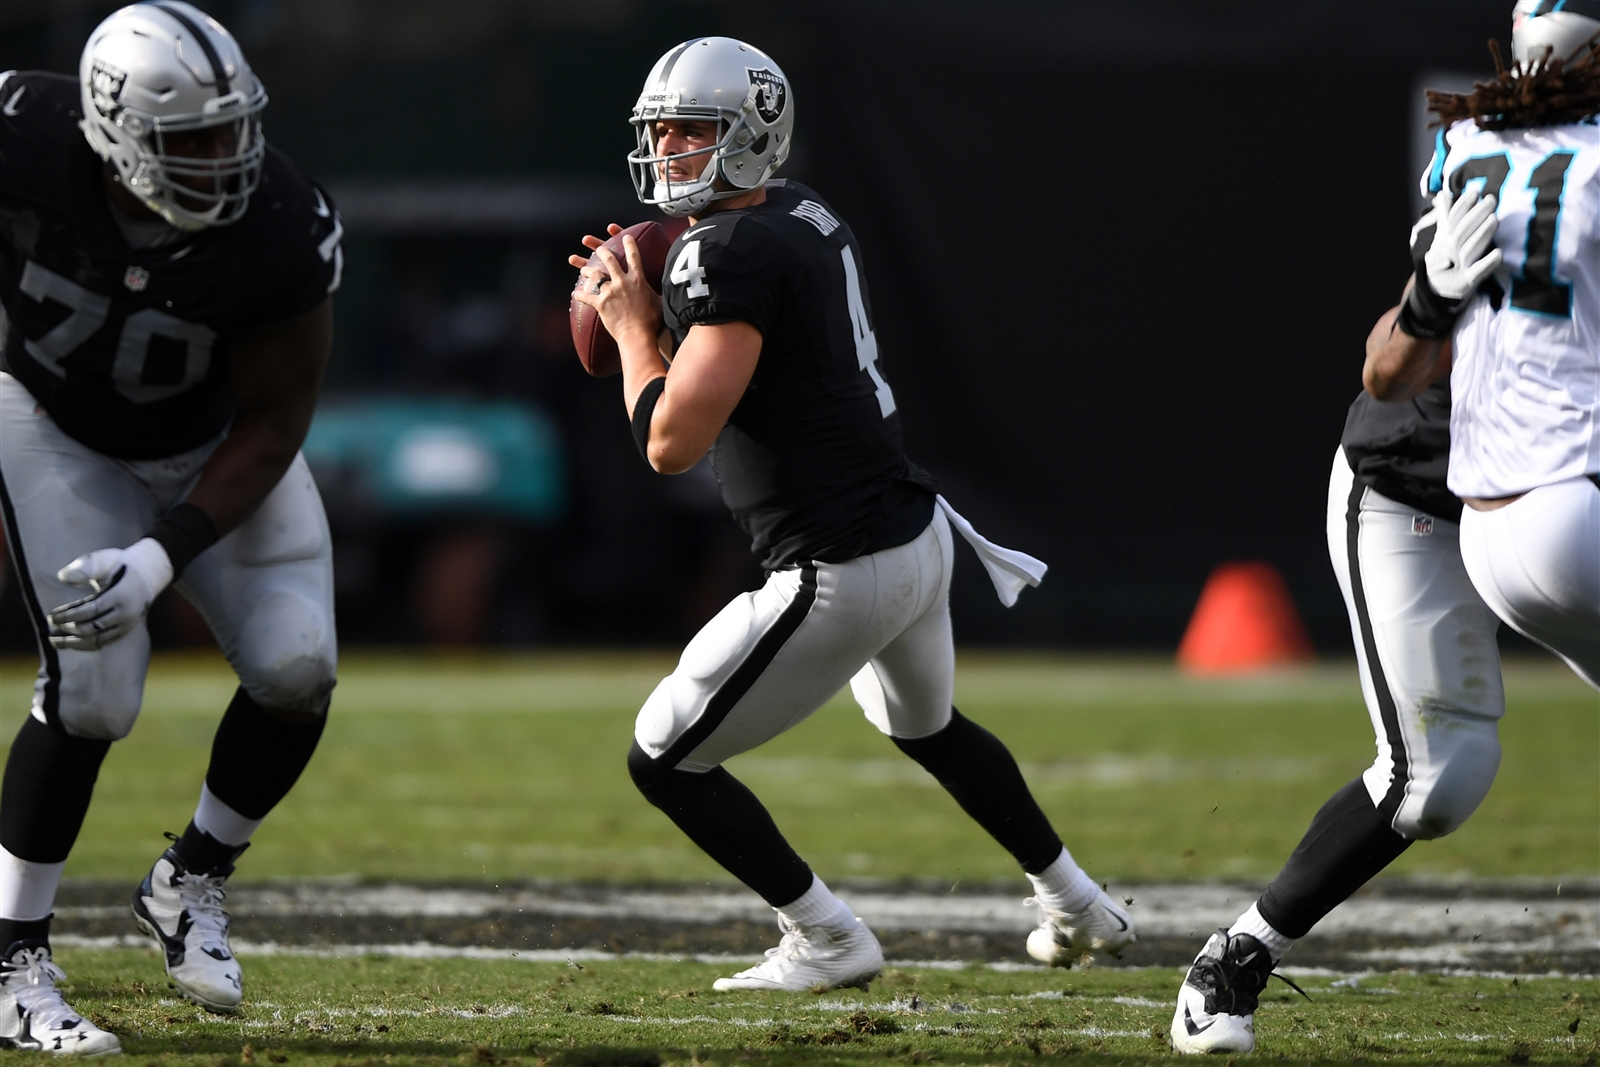 2. Carr shifts to turbo. Derek Carr was the fourth quarterback selected in the 2014 draft, but heu2019s quickly proving to be the best of the bunch. Carr entered Week 12 as one of only seven passers with a quarterback rating above 100 and ranked in the top 10 in completion percentage, yards, and touchdowns. The Raiders are certainly comfortable putting the ball in his hands (he had the eighth-most attempts of any QB), and theyu2019ve surged from worst to first in the division during his tenure. He suffered a finger injury to his throwing hand during Sundayu2019s 35-32 win over the Panthers, but was able to return to the game. He poses a big problem for a Bills secondary thatu2019s been plagued with injuries.